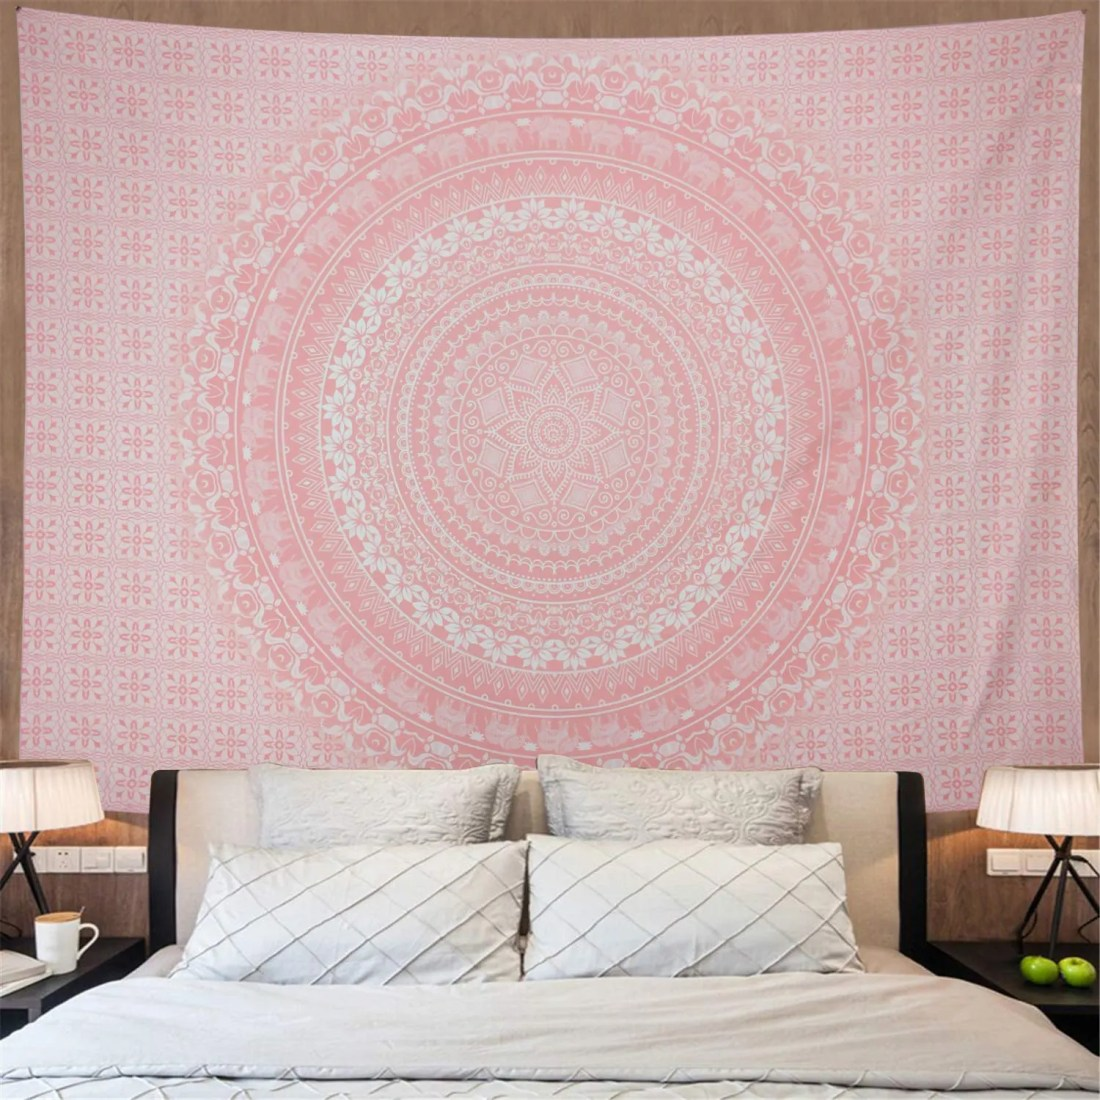 Cutest College Dorm Room Tapestry Ideas 12 Cutest College Dorm Room Tapestry Ideas